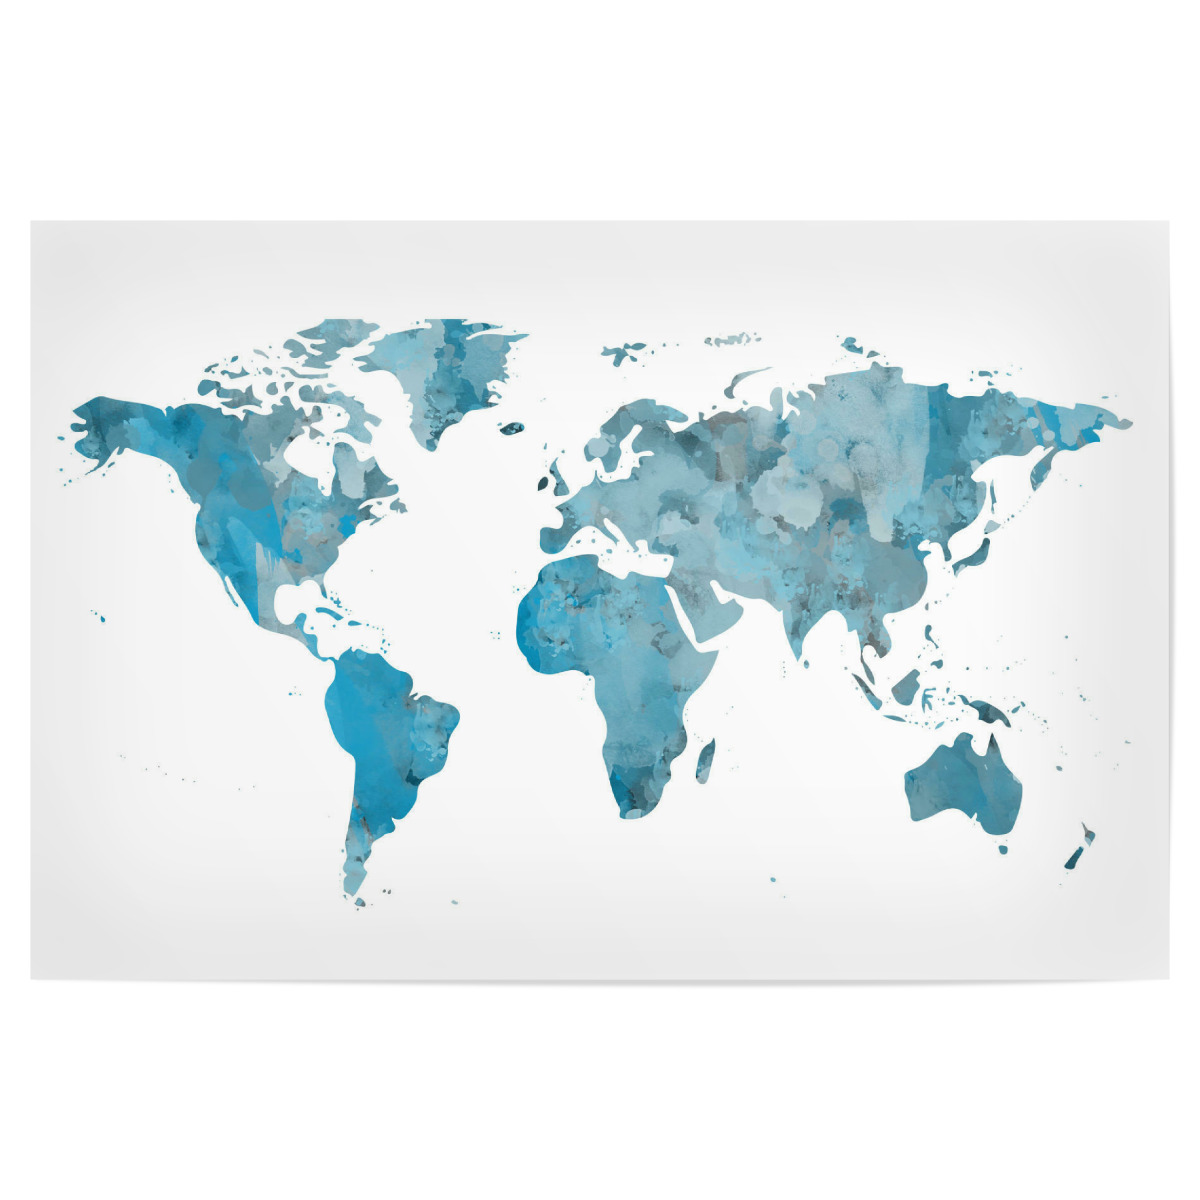 World Map Poster Watercolor Blue als Poster bei artboxONE kaufen